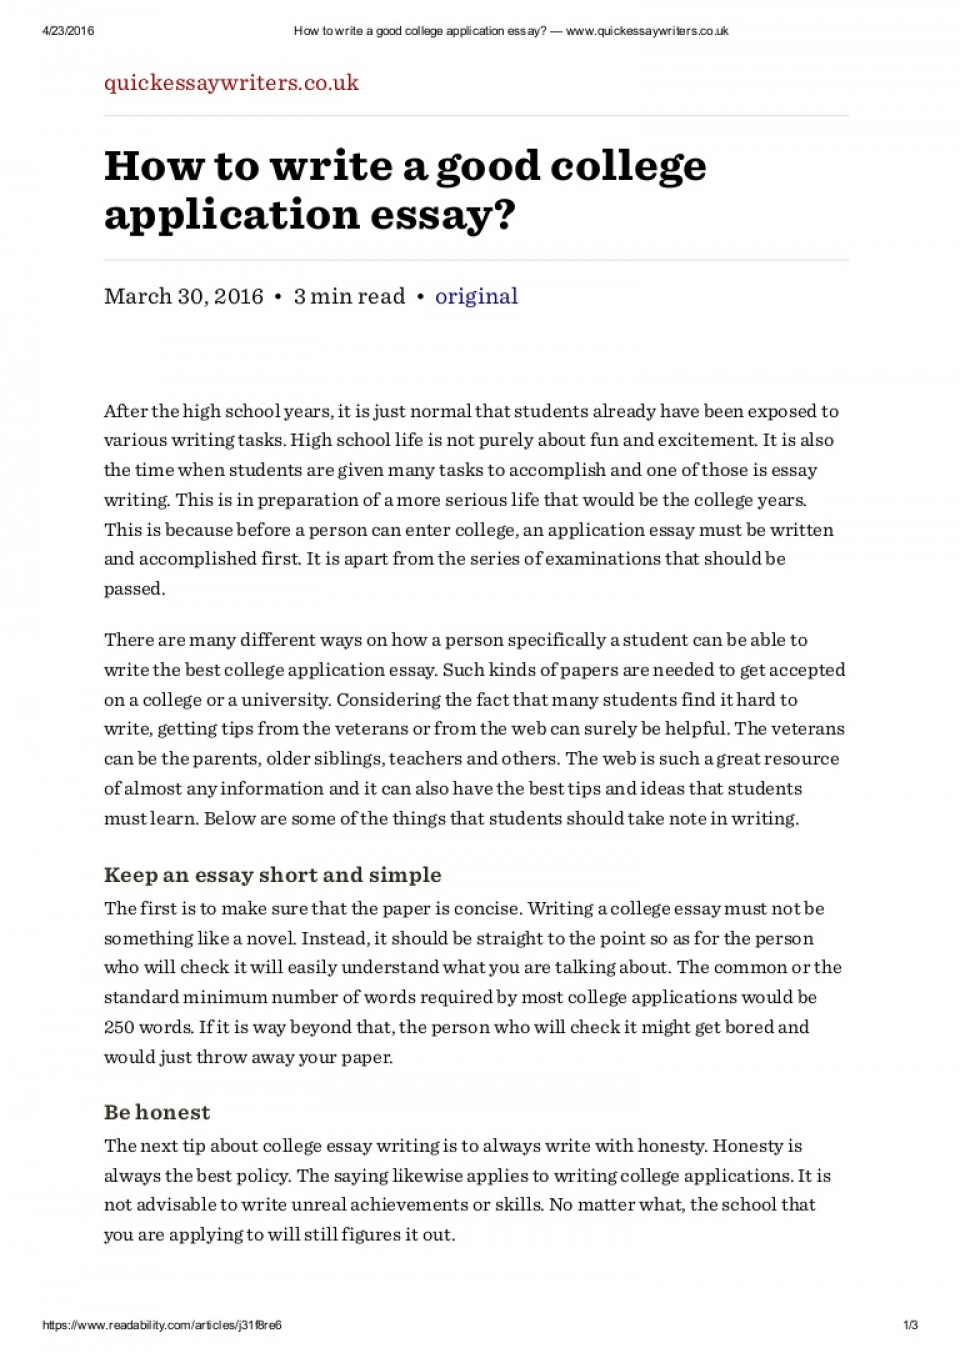 009 Howtowriteagoodcollegeapplicationessaywww Thumbnail Essay Example Writing College Rare A Application How To Write That Stands Out About Yourself Examples Of Uc Essays 960